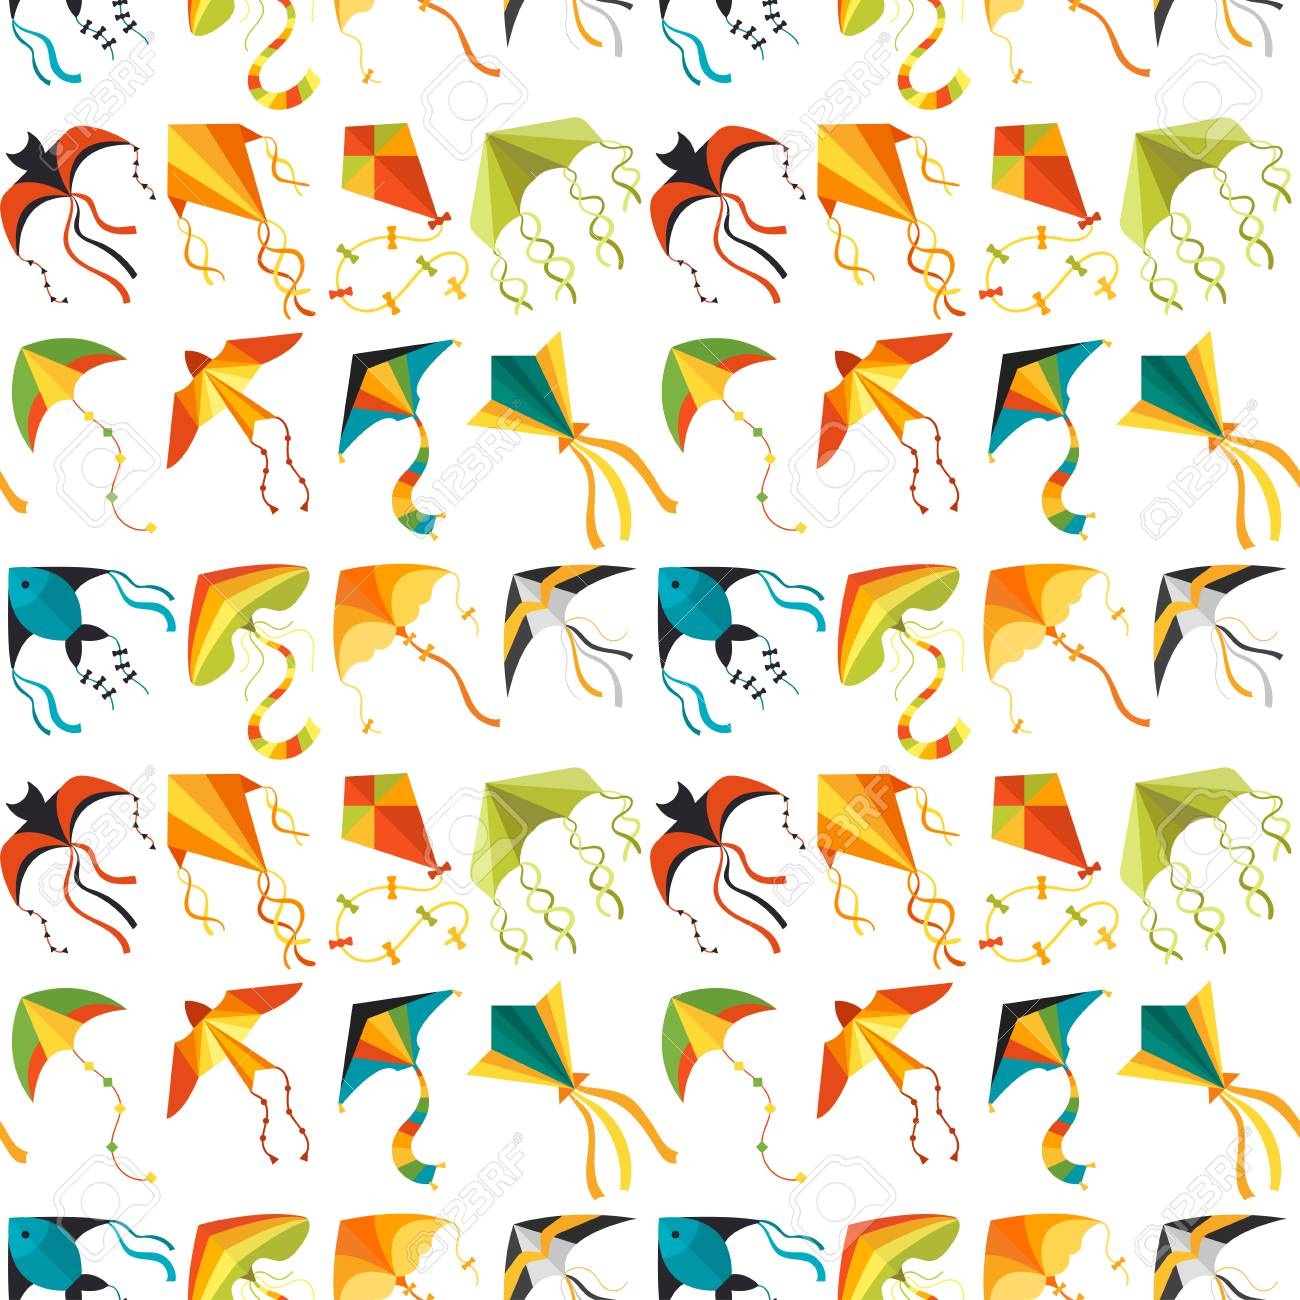 Flying kite snake serpent dragon kids toy colorful outdoor summer activity seamless pattern background vector illustration - 104219332